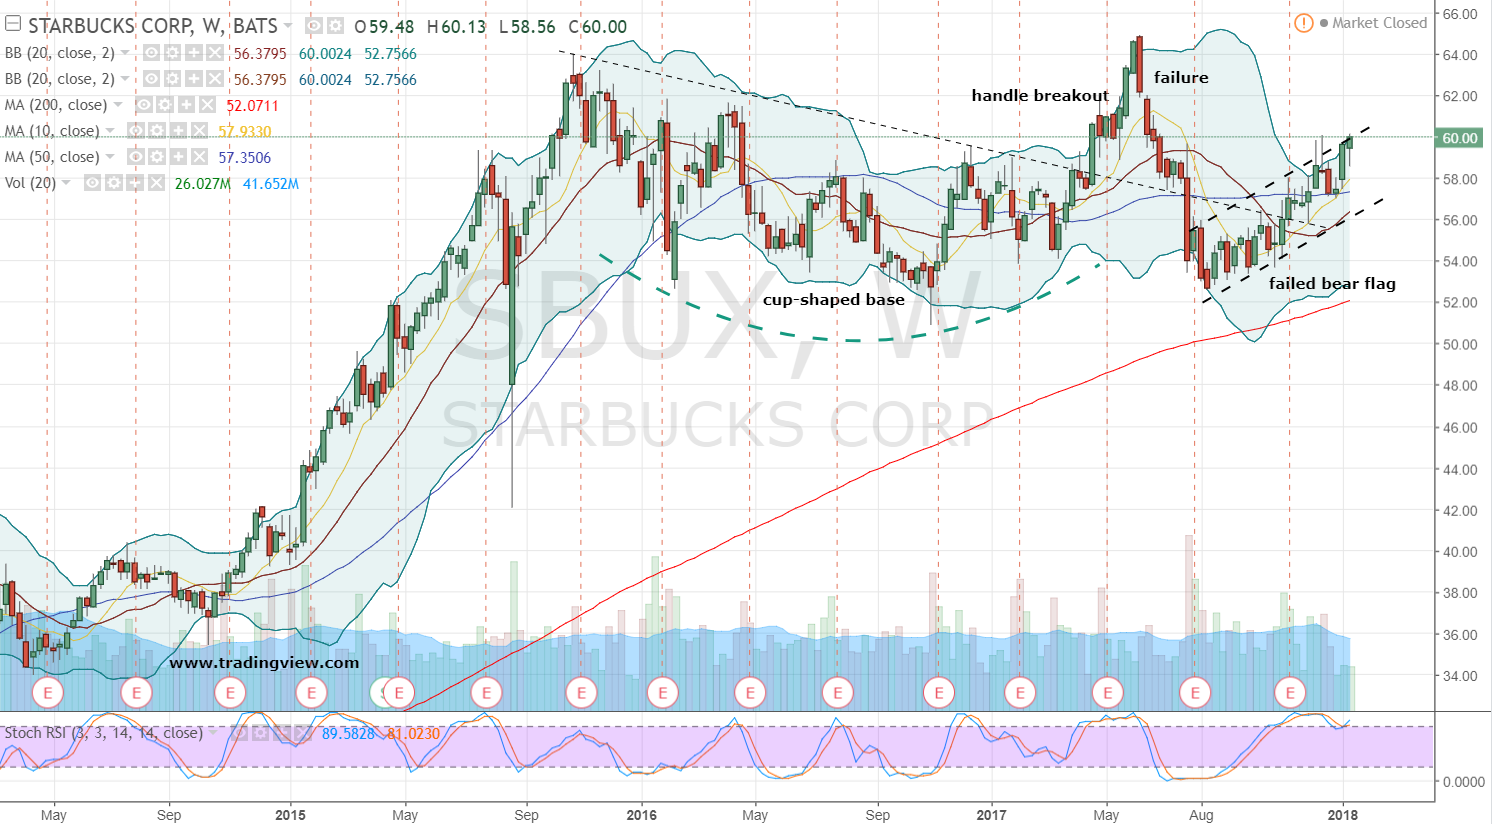 Starbucks Stock Weekly Price Chart